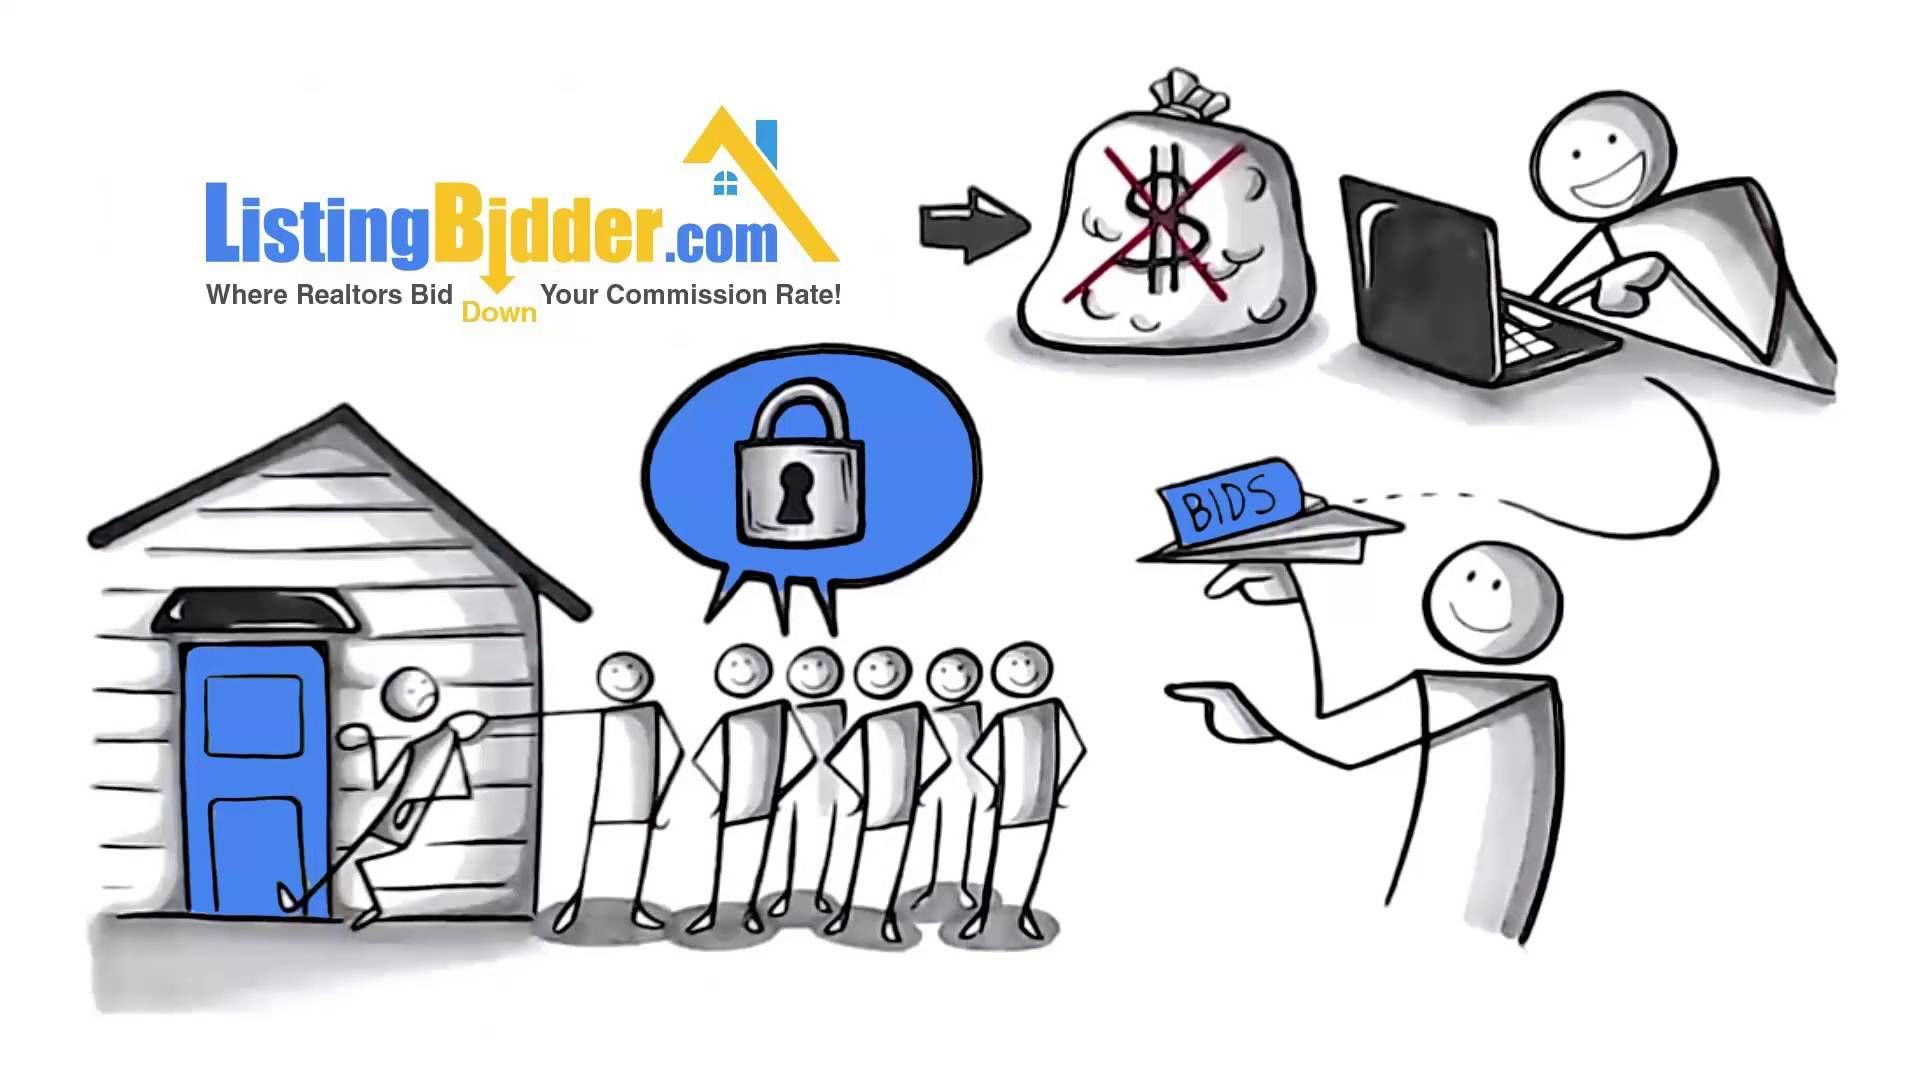 Selling your Home? ListingBidder.com is a free platform for Sellers who want to sell real property and wish to invite their list of realtors to bid down their commission rate so they can SAVE THOUSANDS.  Sellers can anonymously interview multiple local Realtors and watch Realtors bid against each other. There is NO obligation & the Seller remains anonymous. The Seller can even continue to invite more Realtors to bid during the auction. (Patent pending free market commission bid reverse…